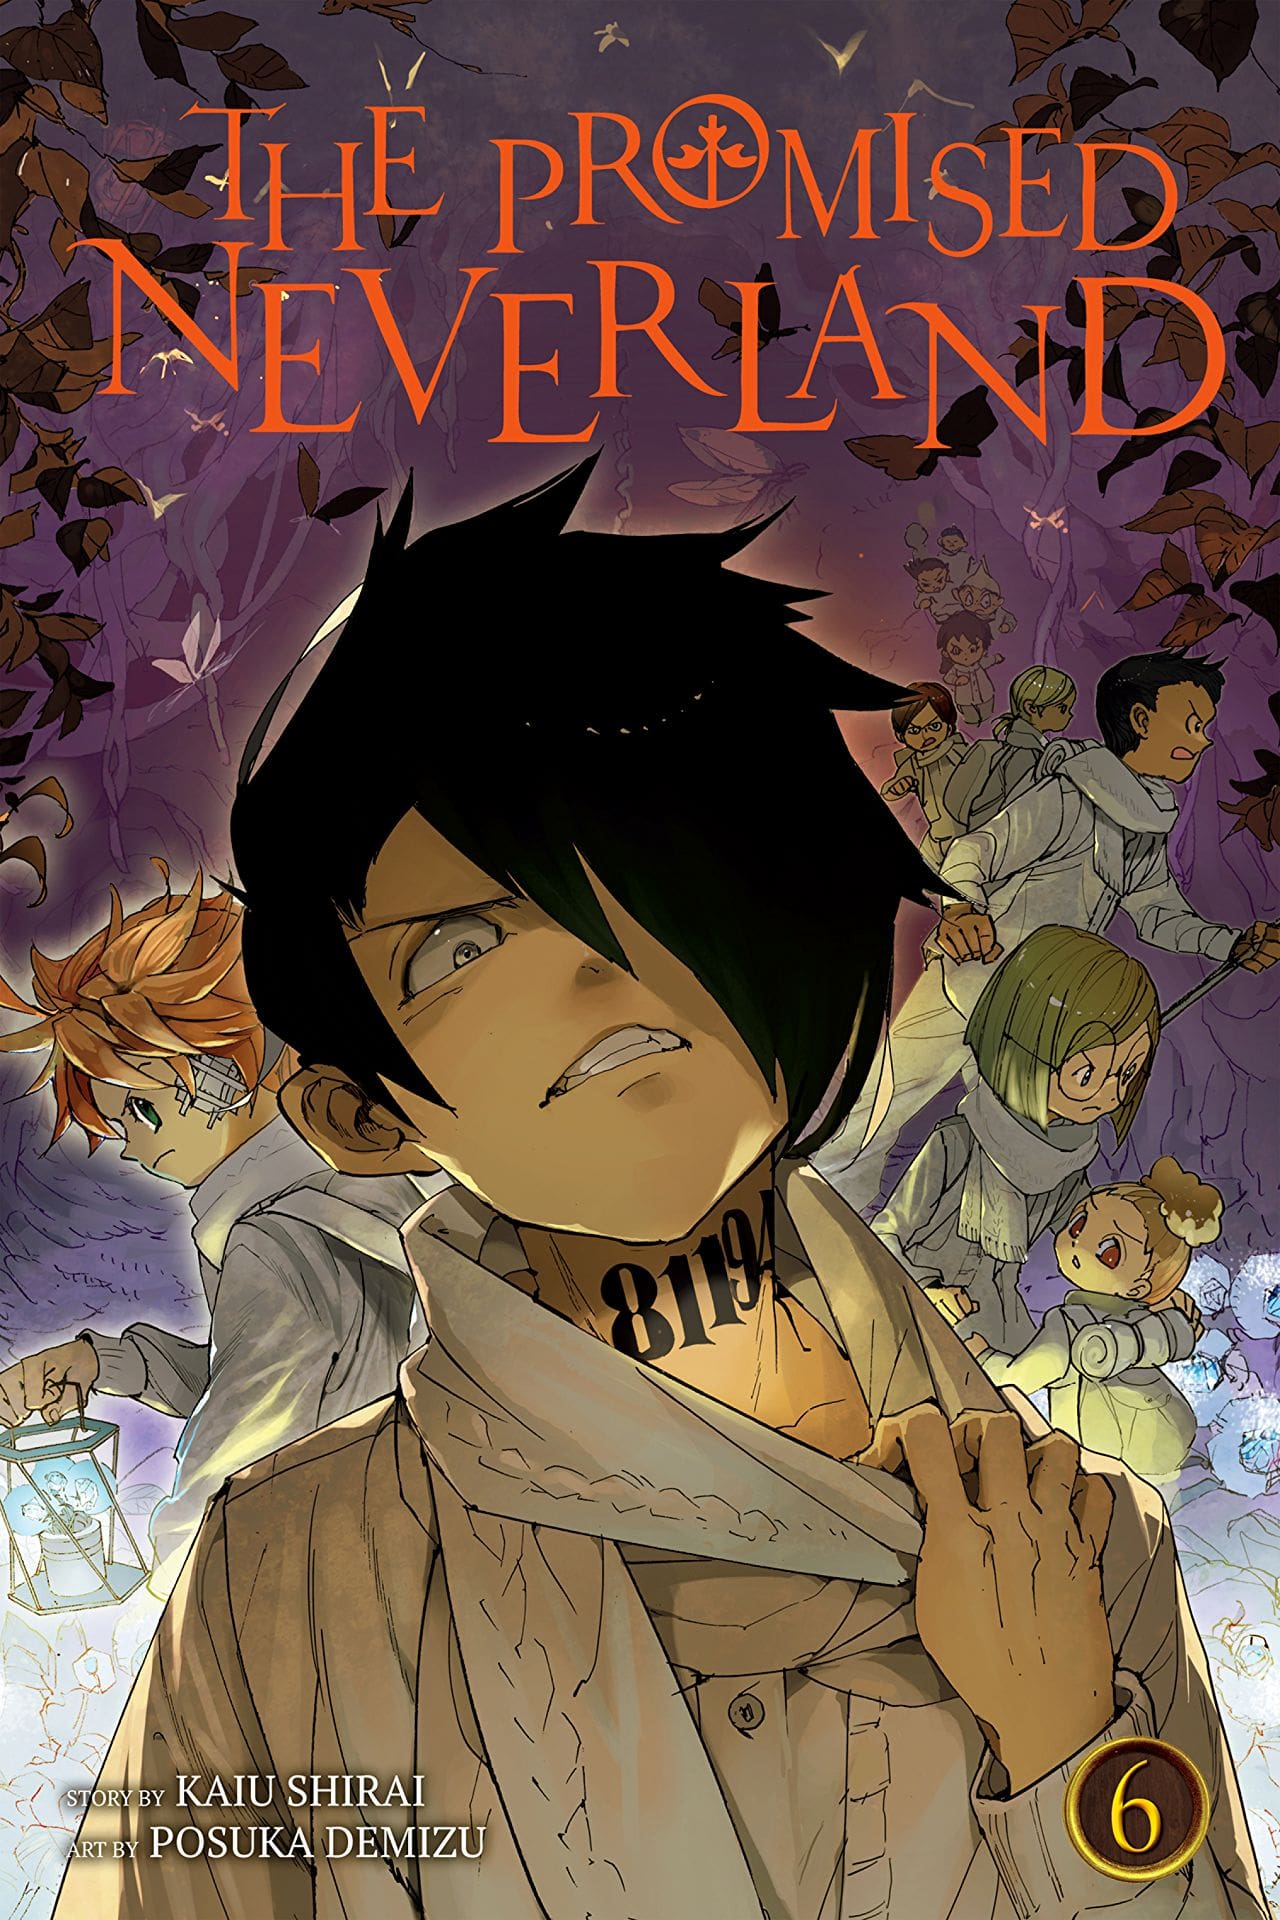 The Promised Neverland Vol. 6 Review